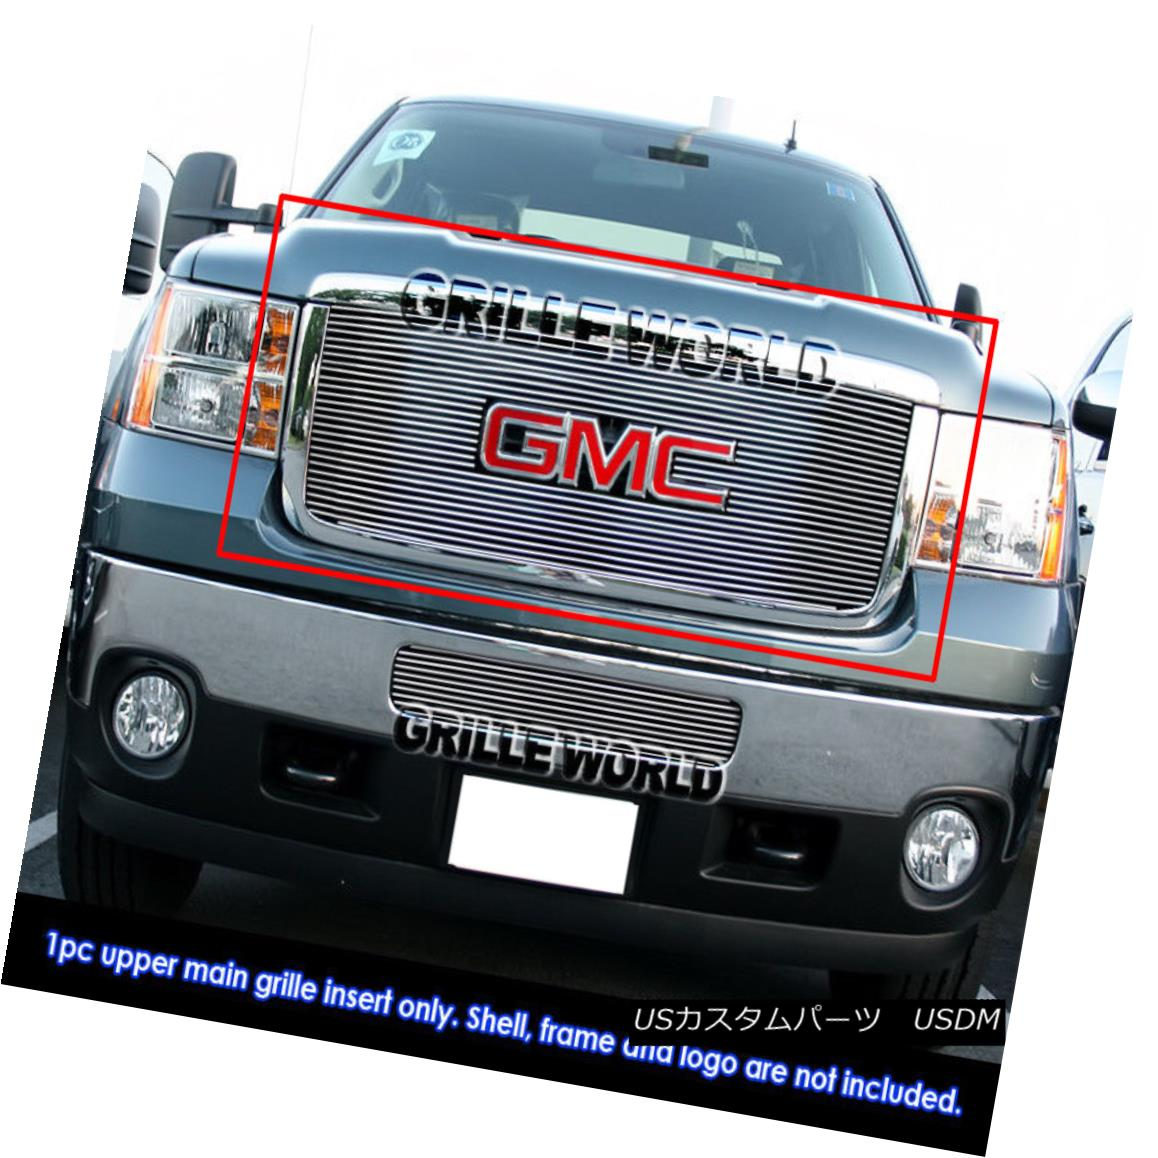 グリル For 2011-2014 GMC Sierra 2500HD/3500HD Billet Grille Grill Insert 2011-2014 GMC Sierra 2500HD / 3500HDビレットグリルグリルインサート